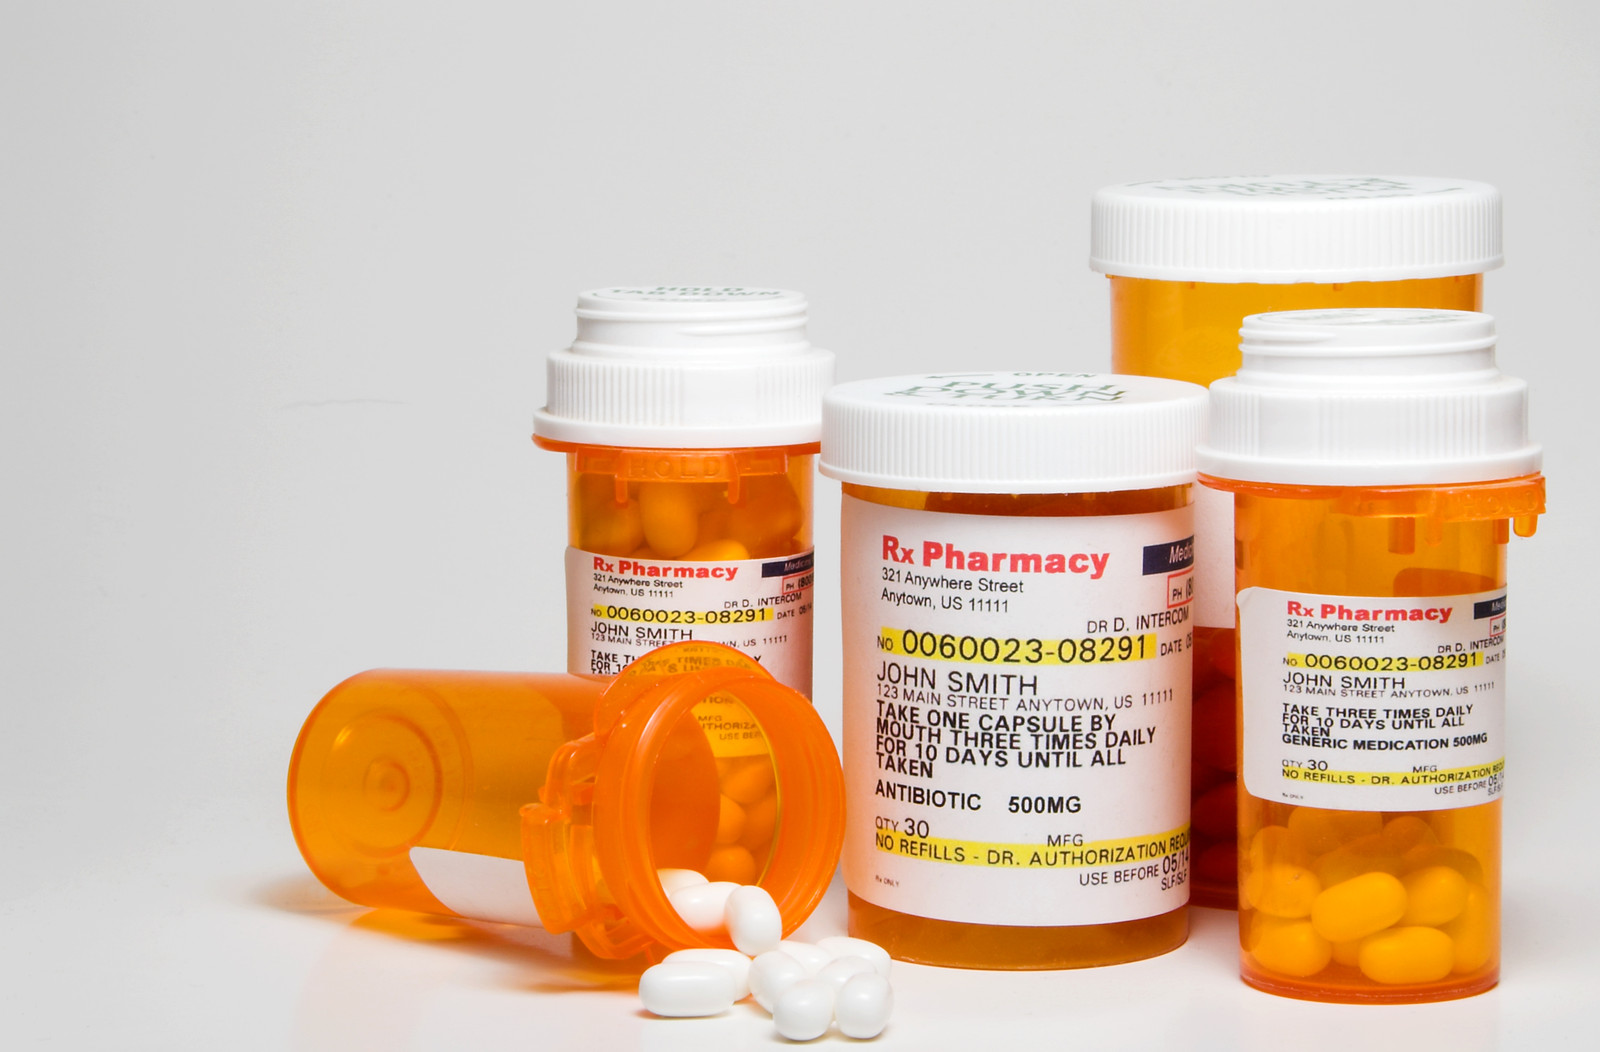 ACA Improved Rx Drug Access, But Some Still Face Barriers to Finding Best Coverage